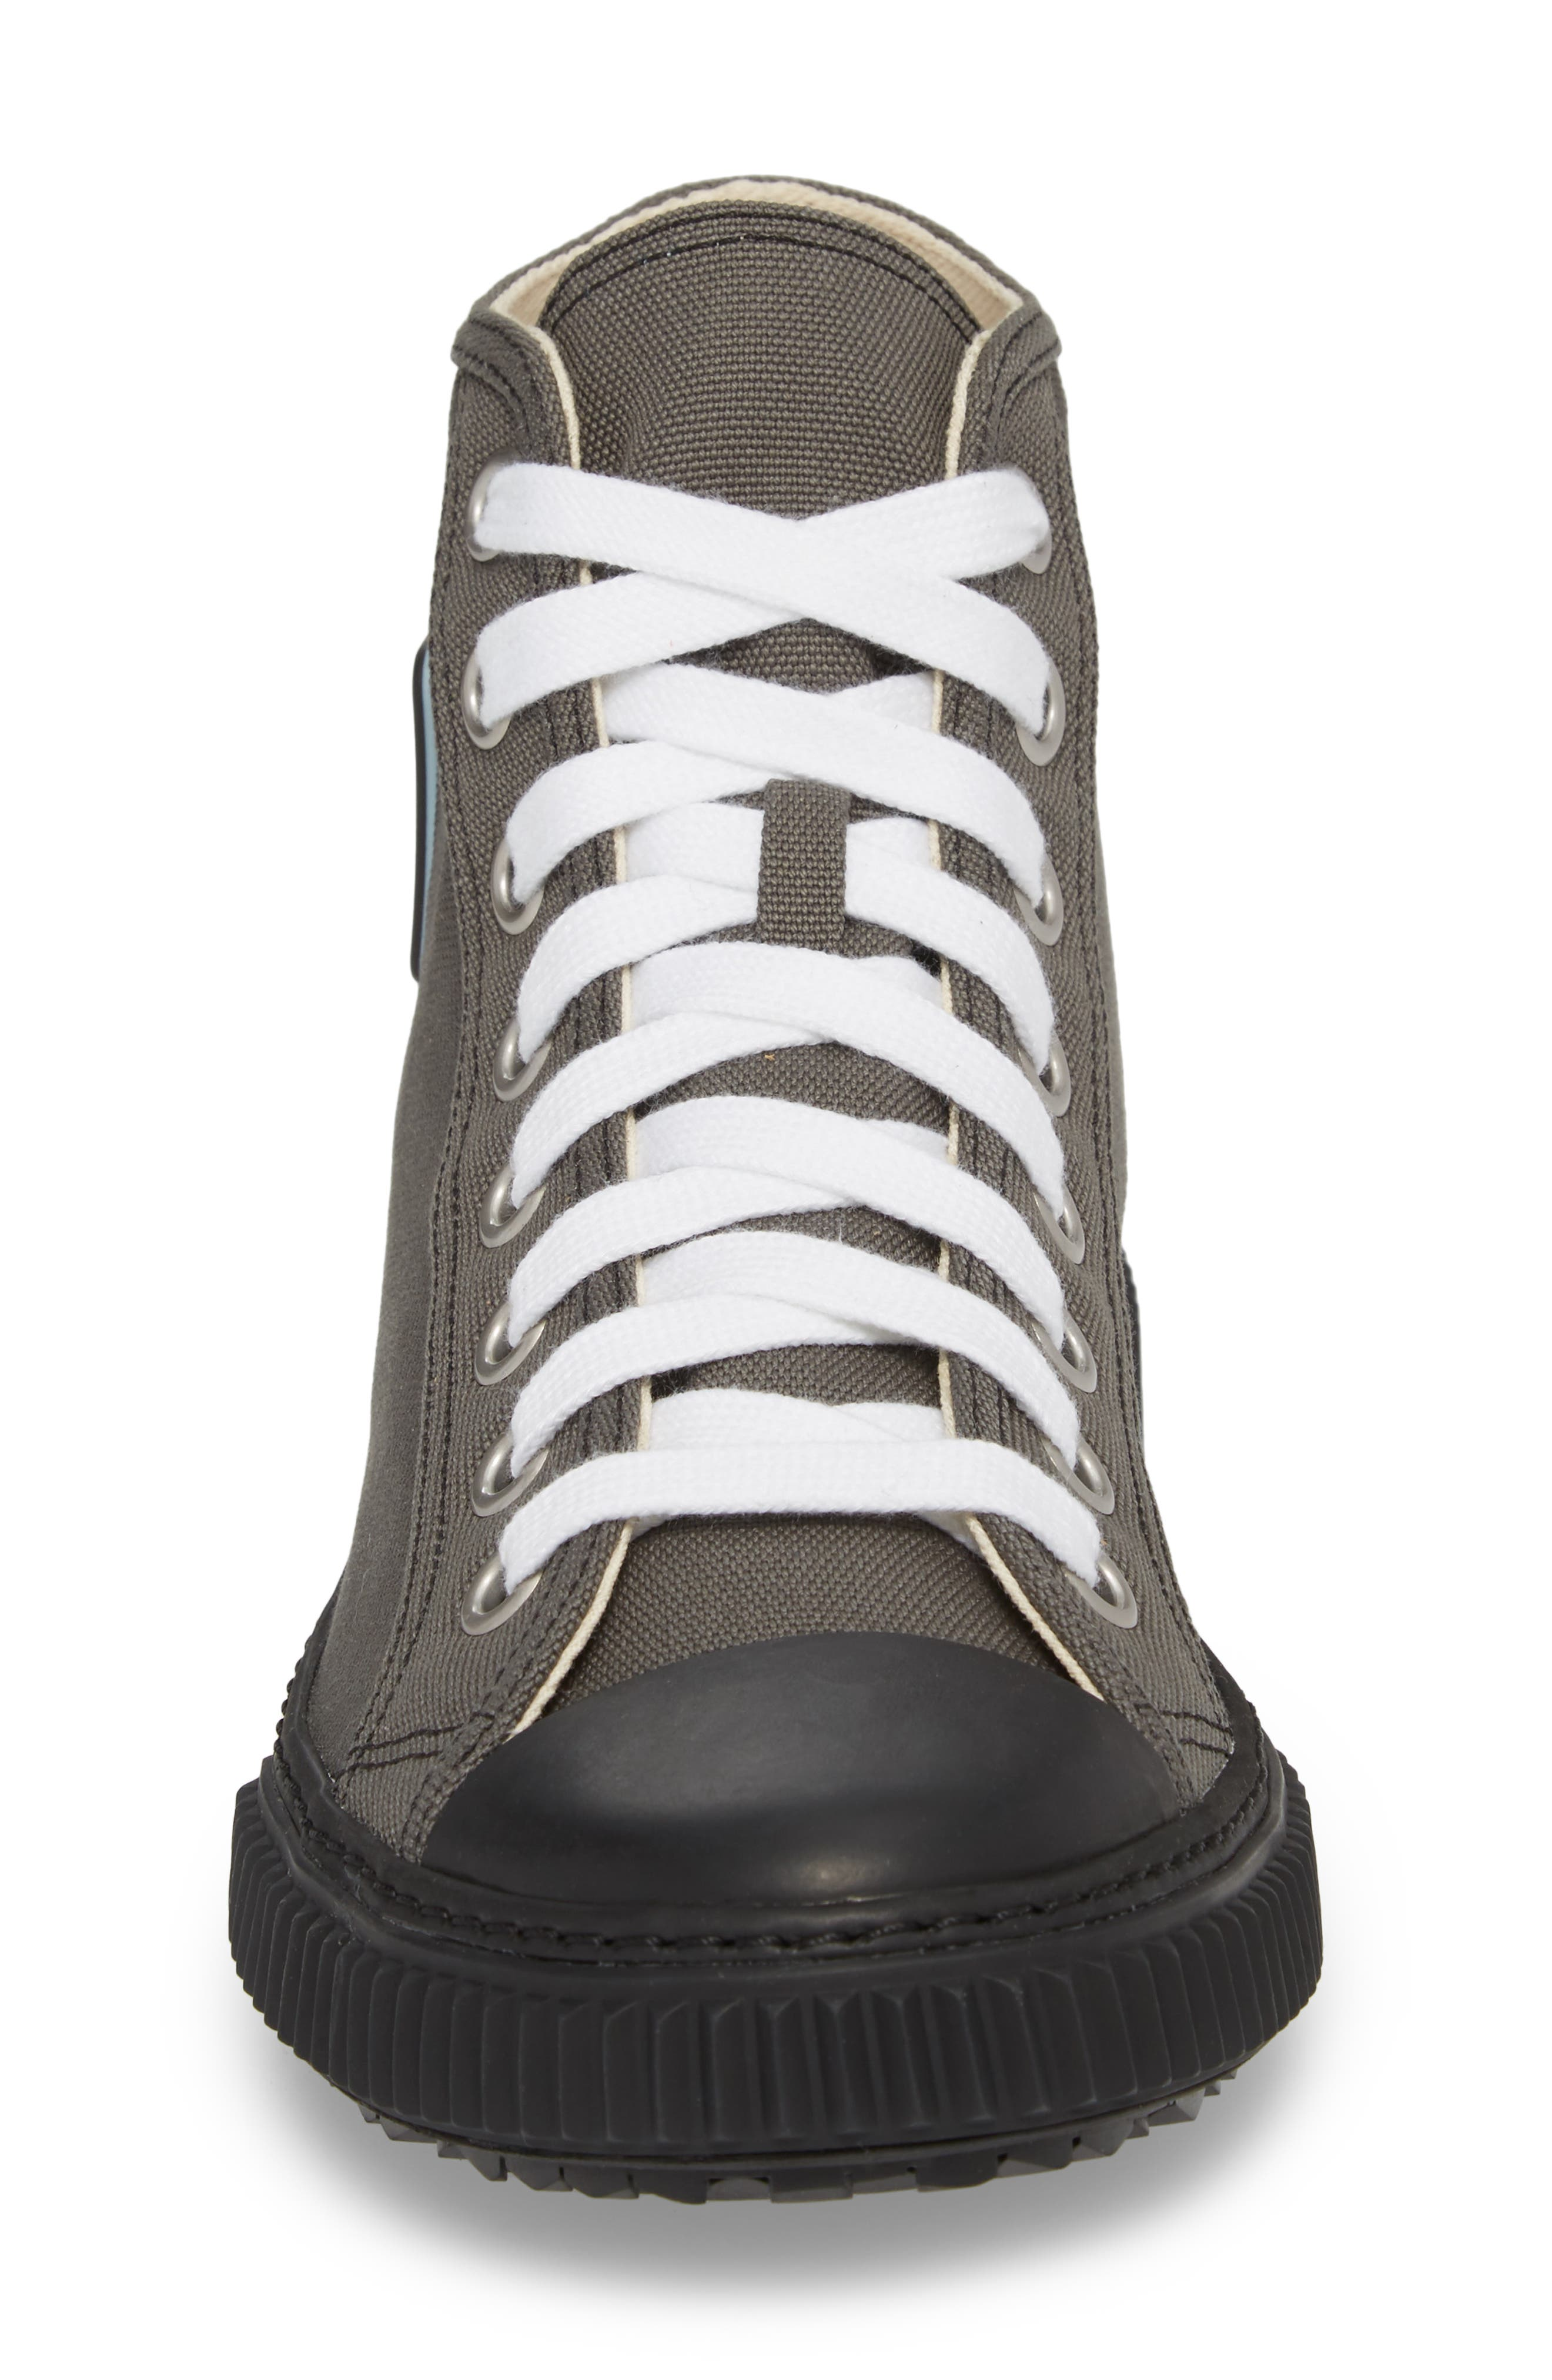 Cap Toe High Top Sneaker,                             Alternate thumbnail 4, color,                             Ardesia Nero